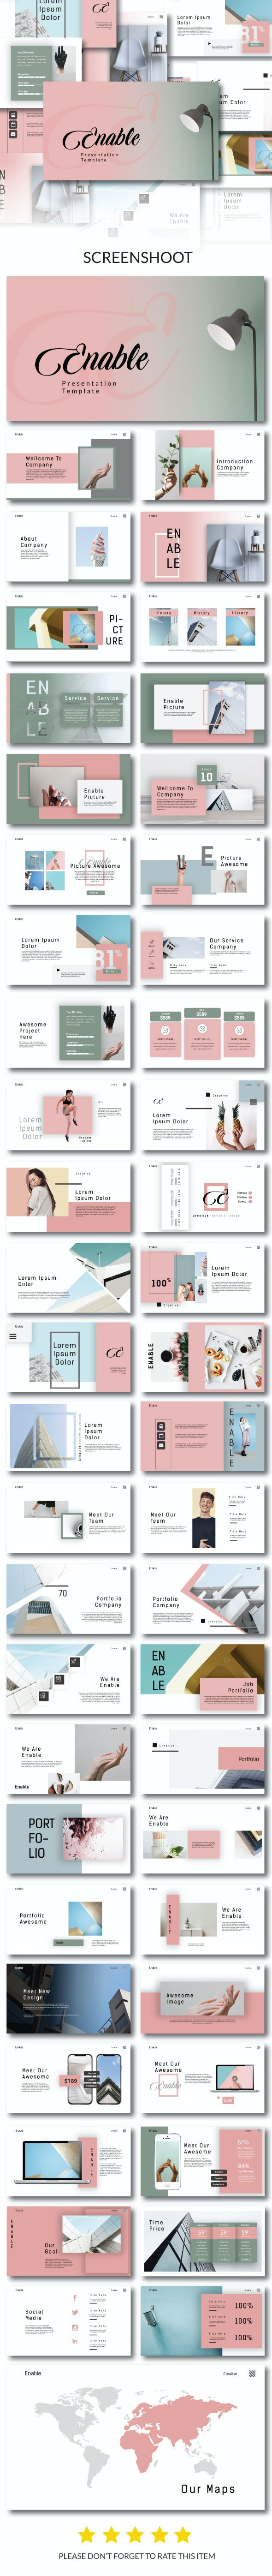 Enable Creative - Powerpoint Template - PowerPoint Templates Presentation Templates